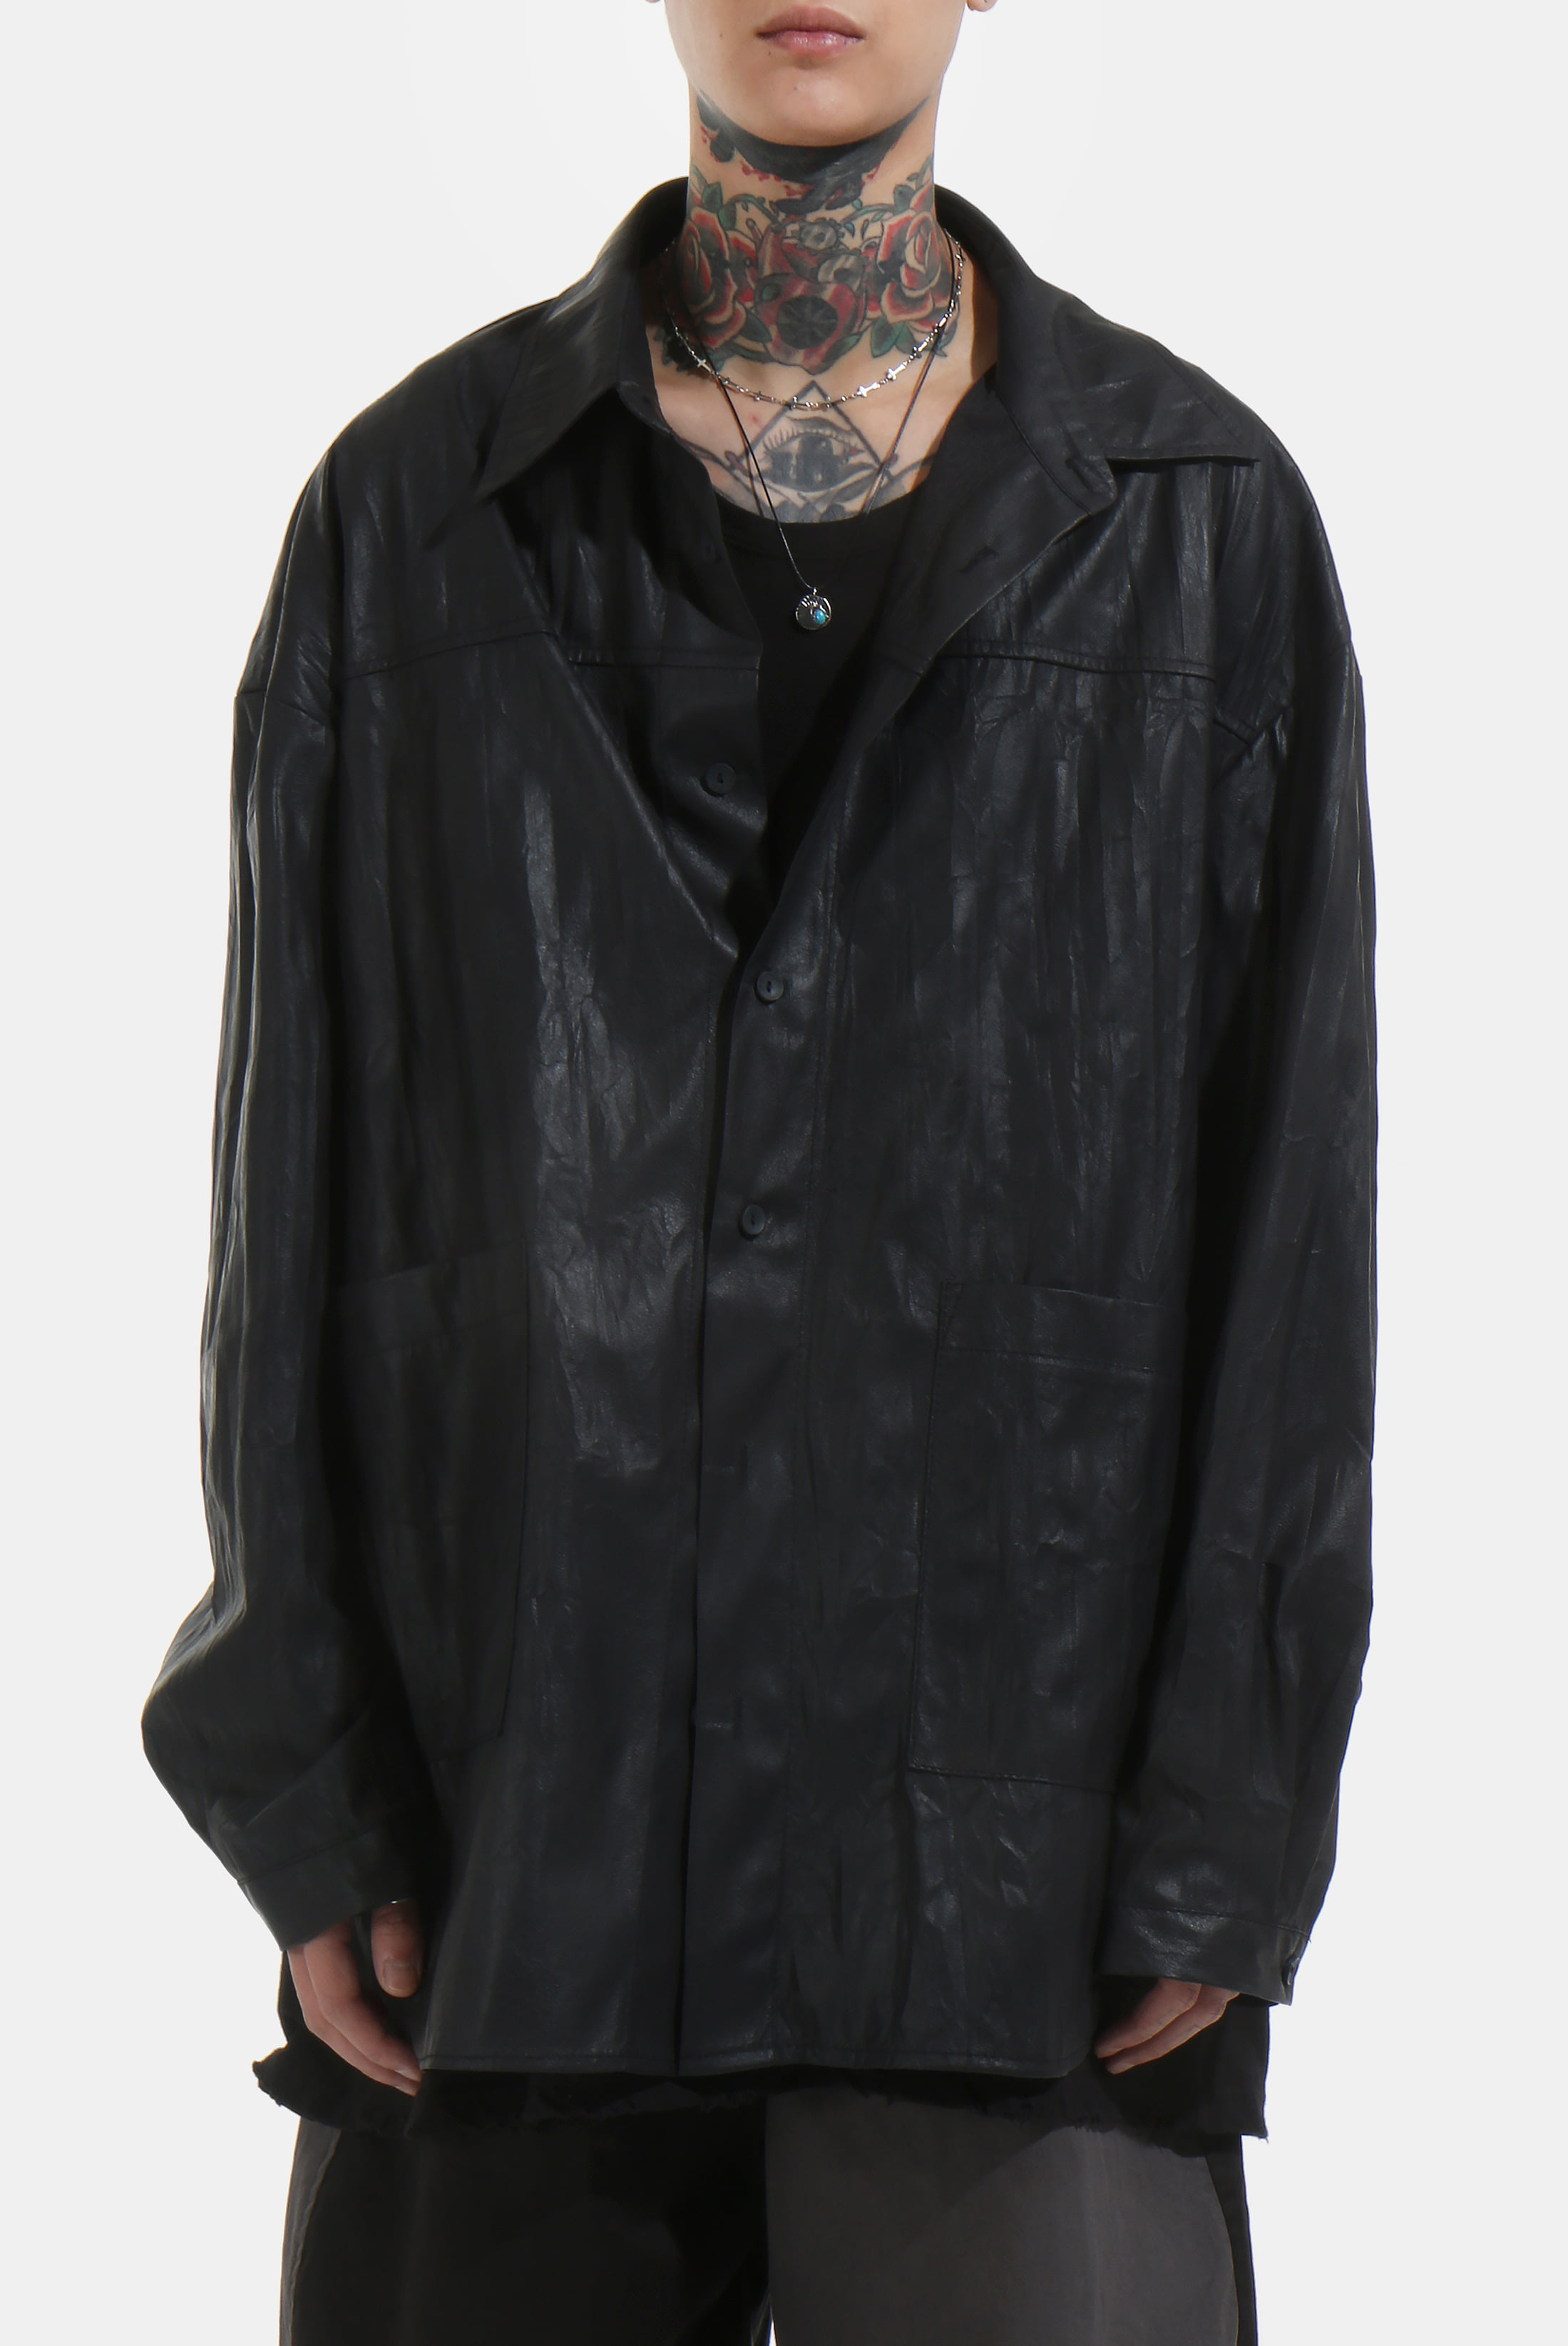 Wrinkle_Leather Over Shirts_Jacket